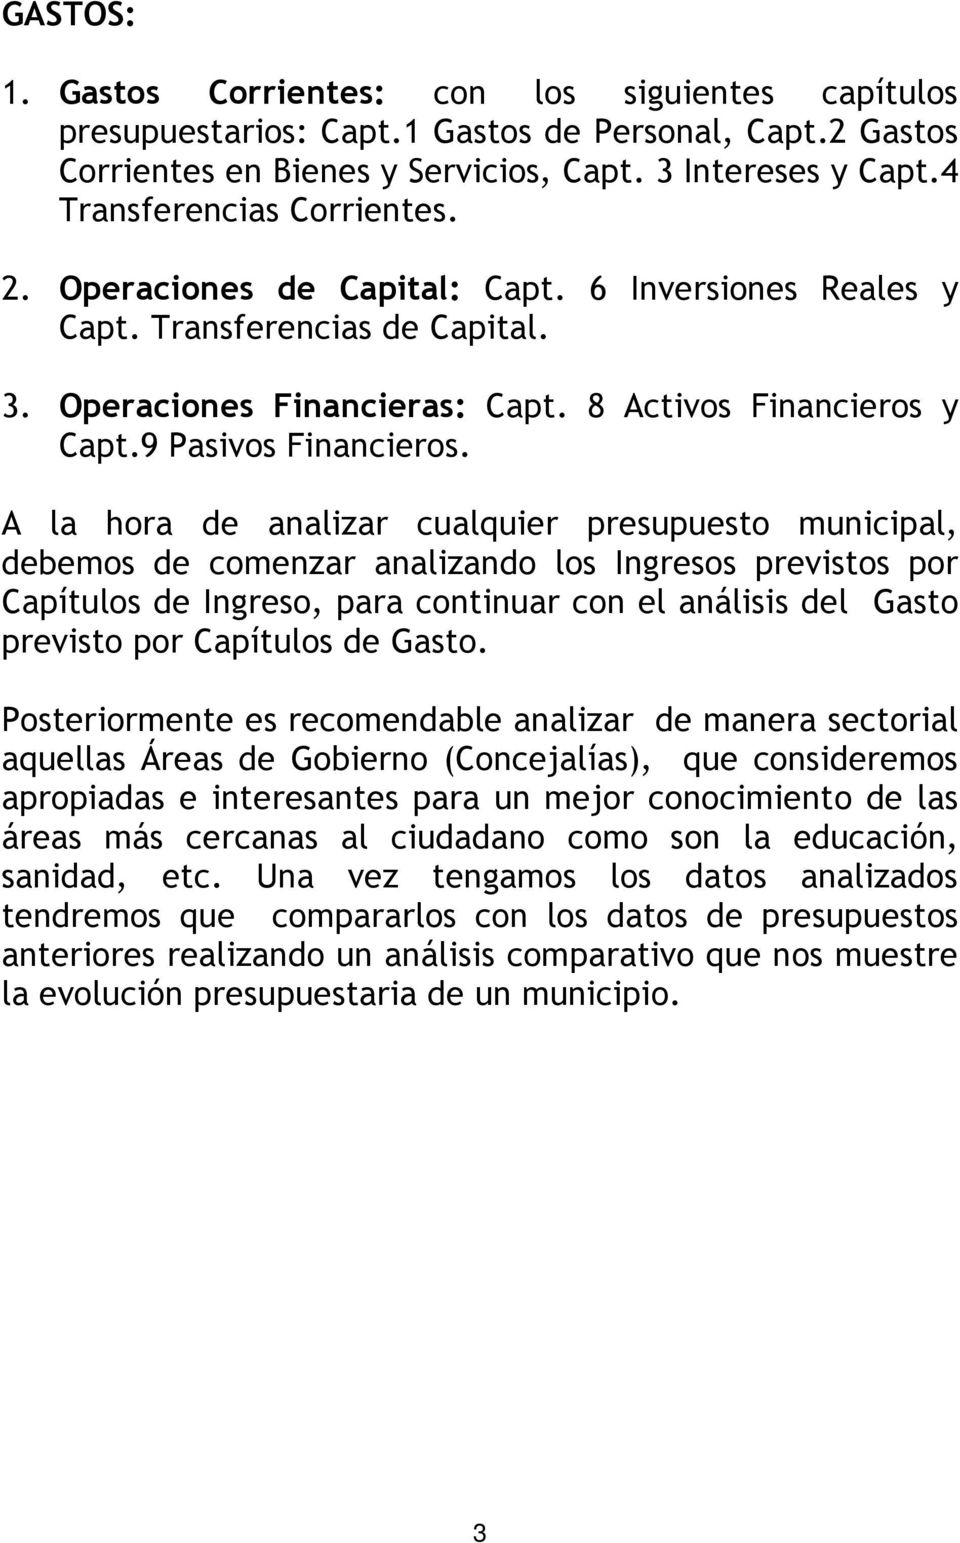 9 Pasivos Financieros.